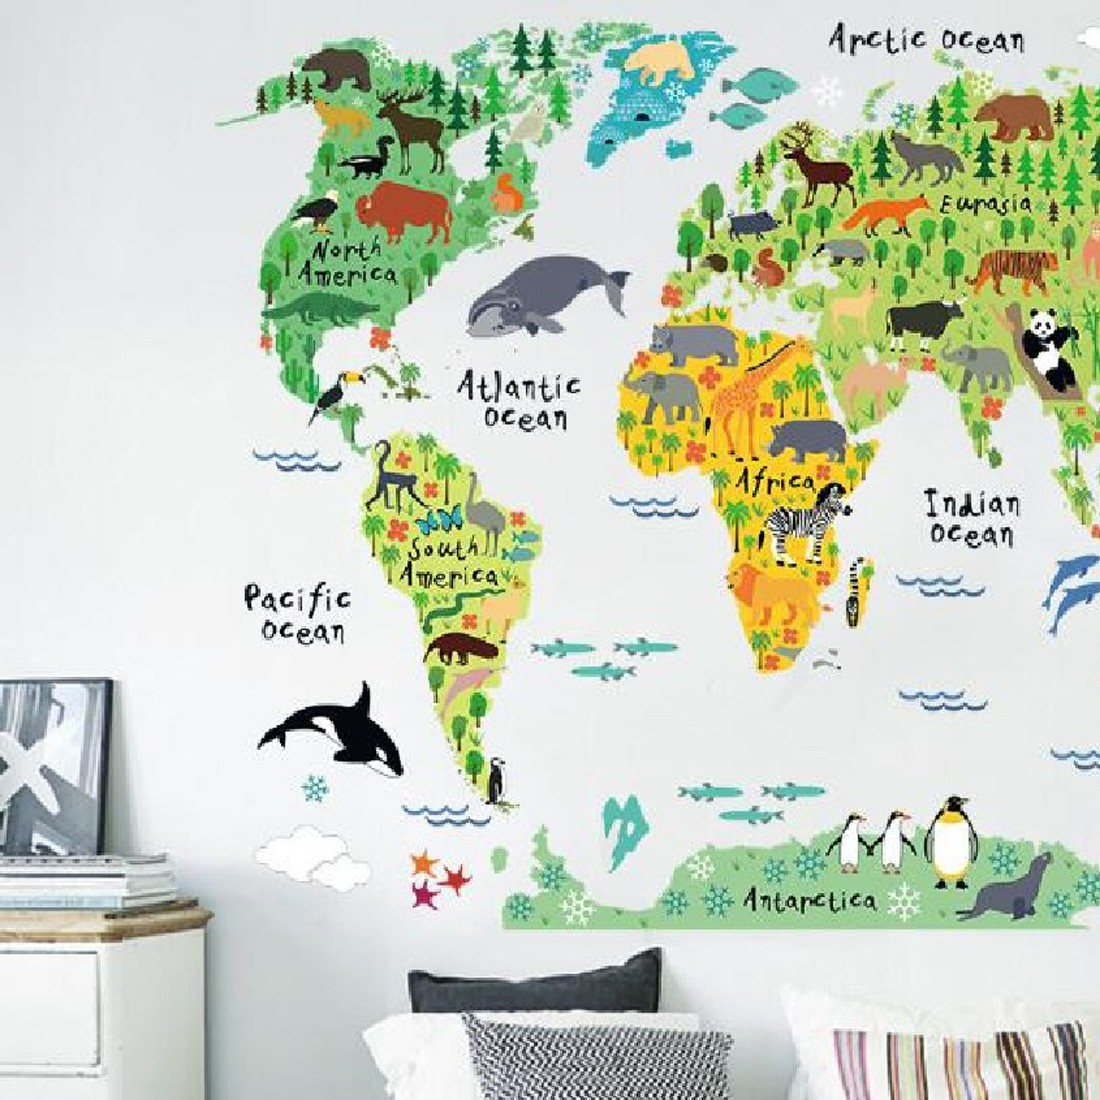 Hot sale removable diy mural wallpaper animal world map wall hot sale removable diy mural wallpaper animal world map wall stickers decal for home decoration free shipping in wall stickers from home garden on gumiabroncs Images